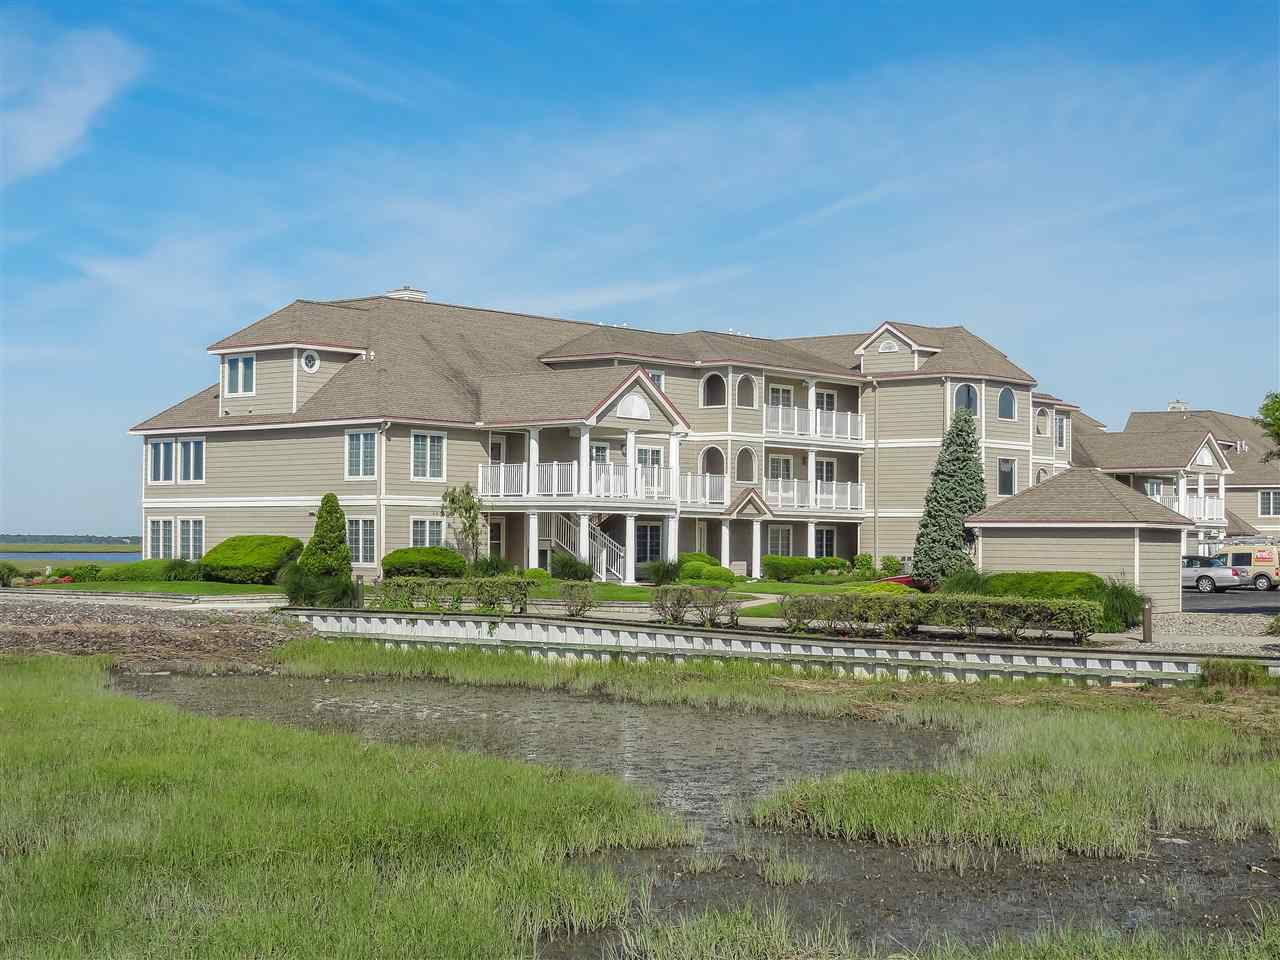 1127, A24 Stone Harbor, Stone Harbor Manor